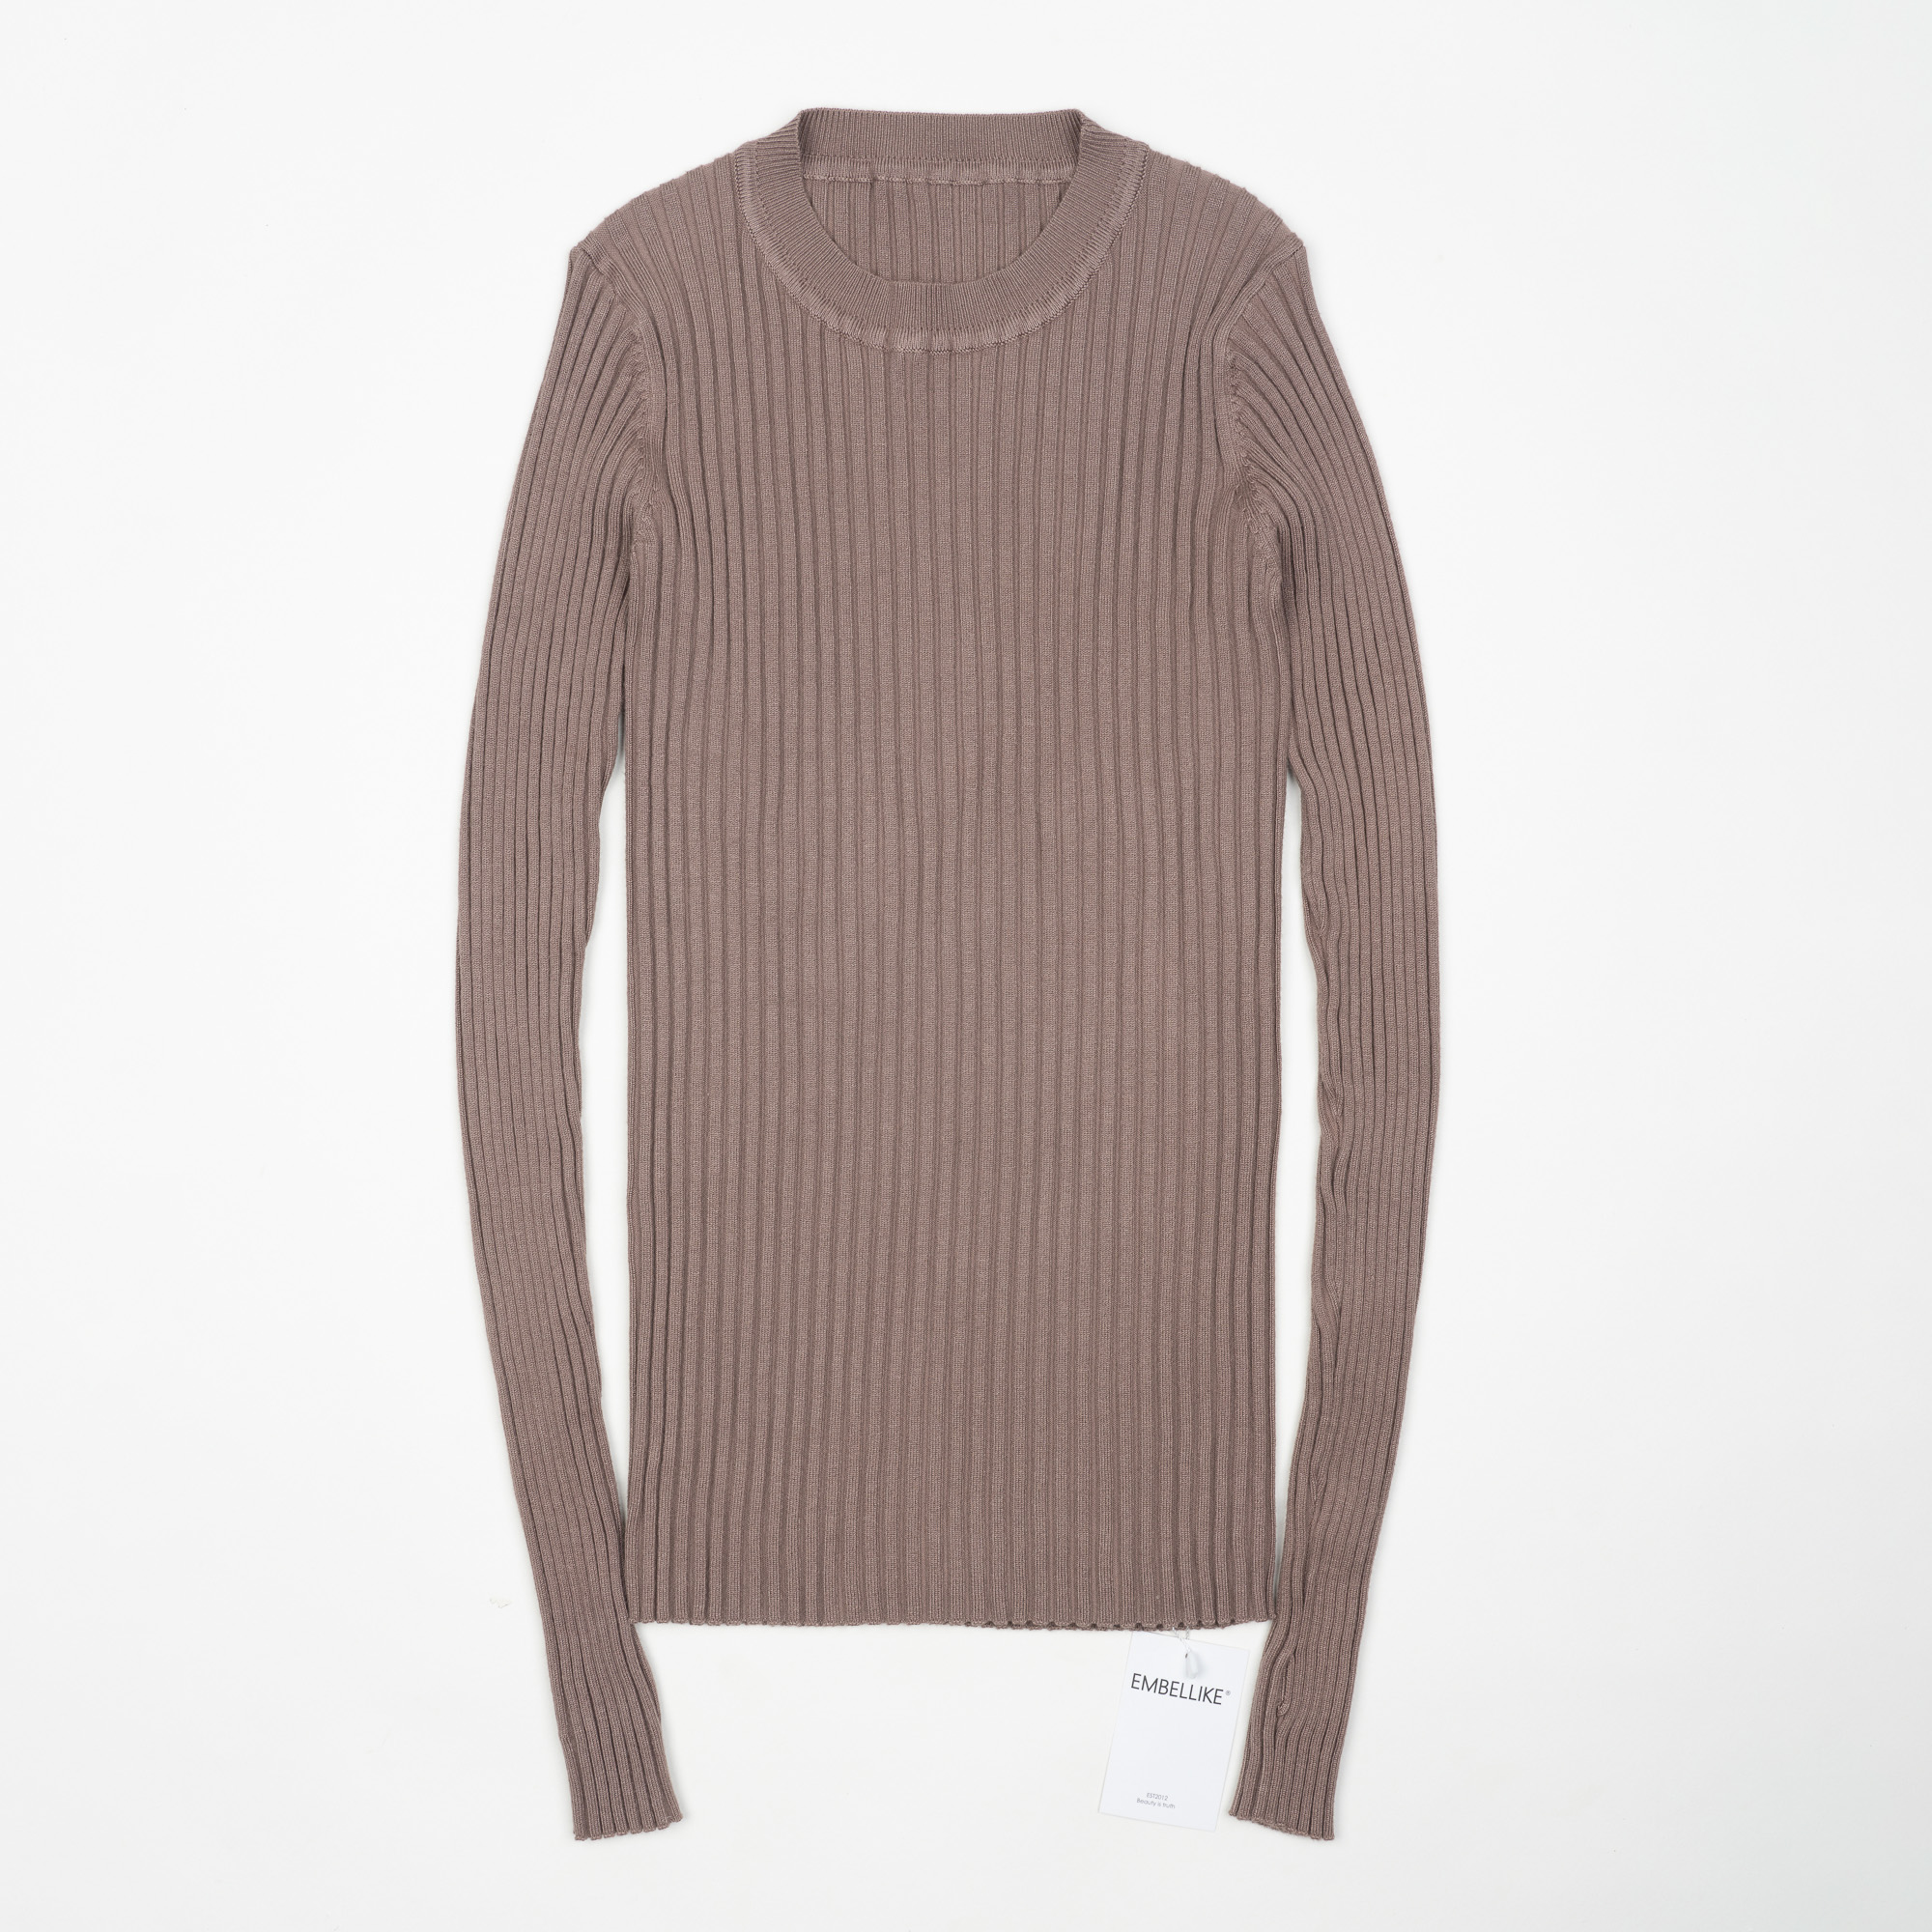 Women Sweater Pullover Basic Ribbed Sweaters Cotton Tops Knitted Solid Crew Neck With Thumb Hole 15